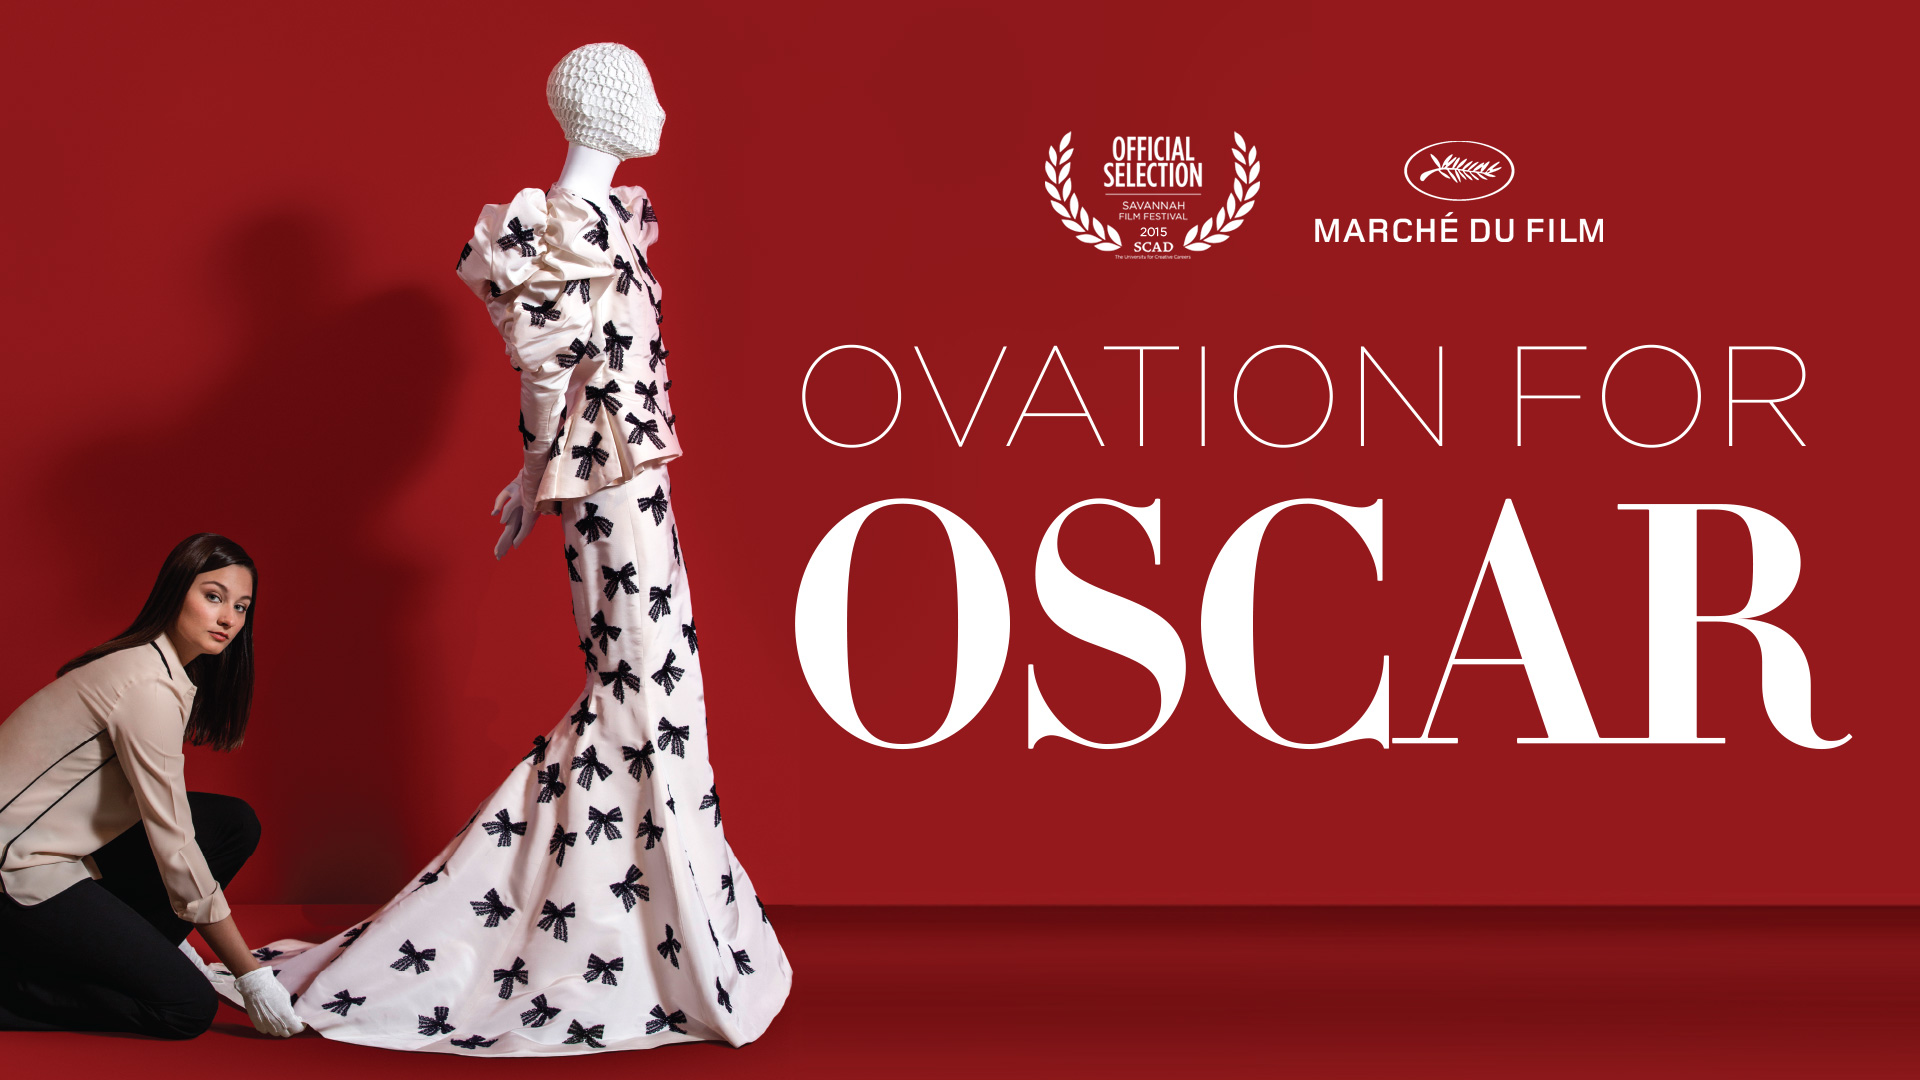 2015 05 12 Scad Alumni Premiere Oscar De La Renta Exhibition Film likewise 2016 11 17 Explore Dynamic Exhibitions Scad Fash Museum Fashion And Film also Oscar De La Renta Exposicao Scad Museum Art moreover 15 Mostras Fashion Que Acontecem Em 2016 moreover 2015 02 05 Oscar De La Renta Exhibition. on oscar de la renta scad